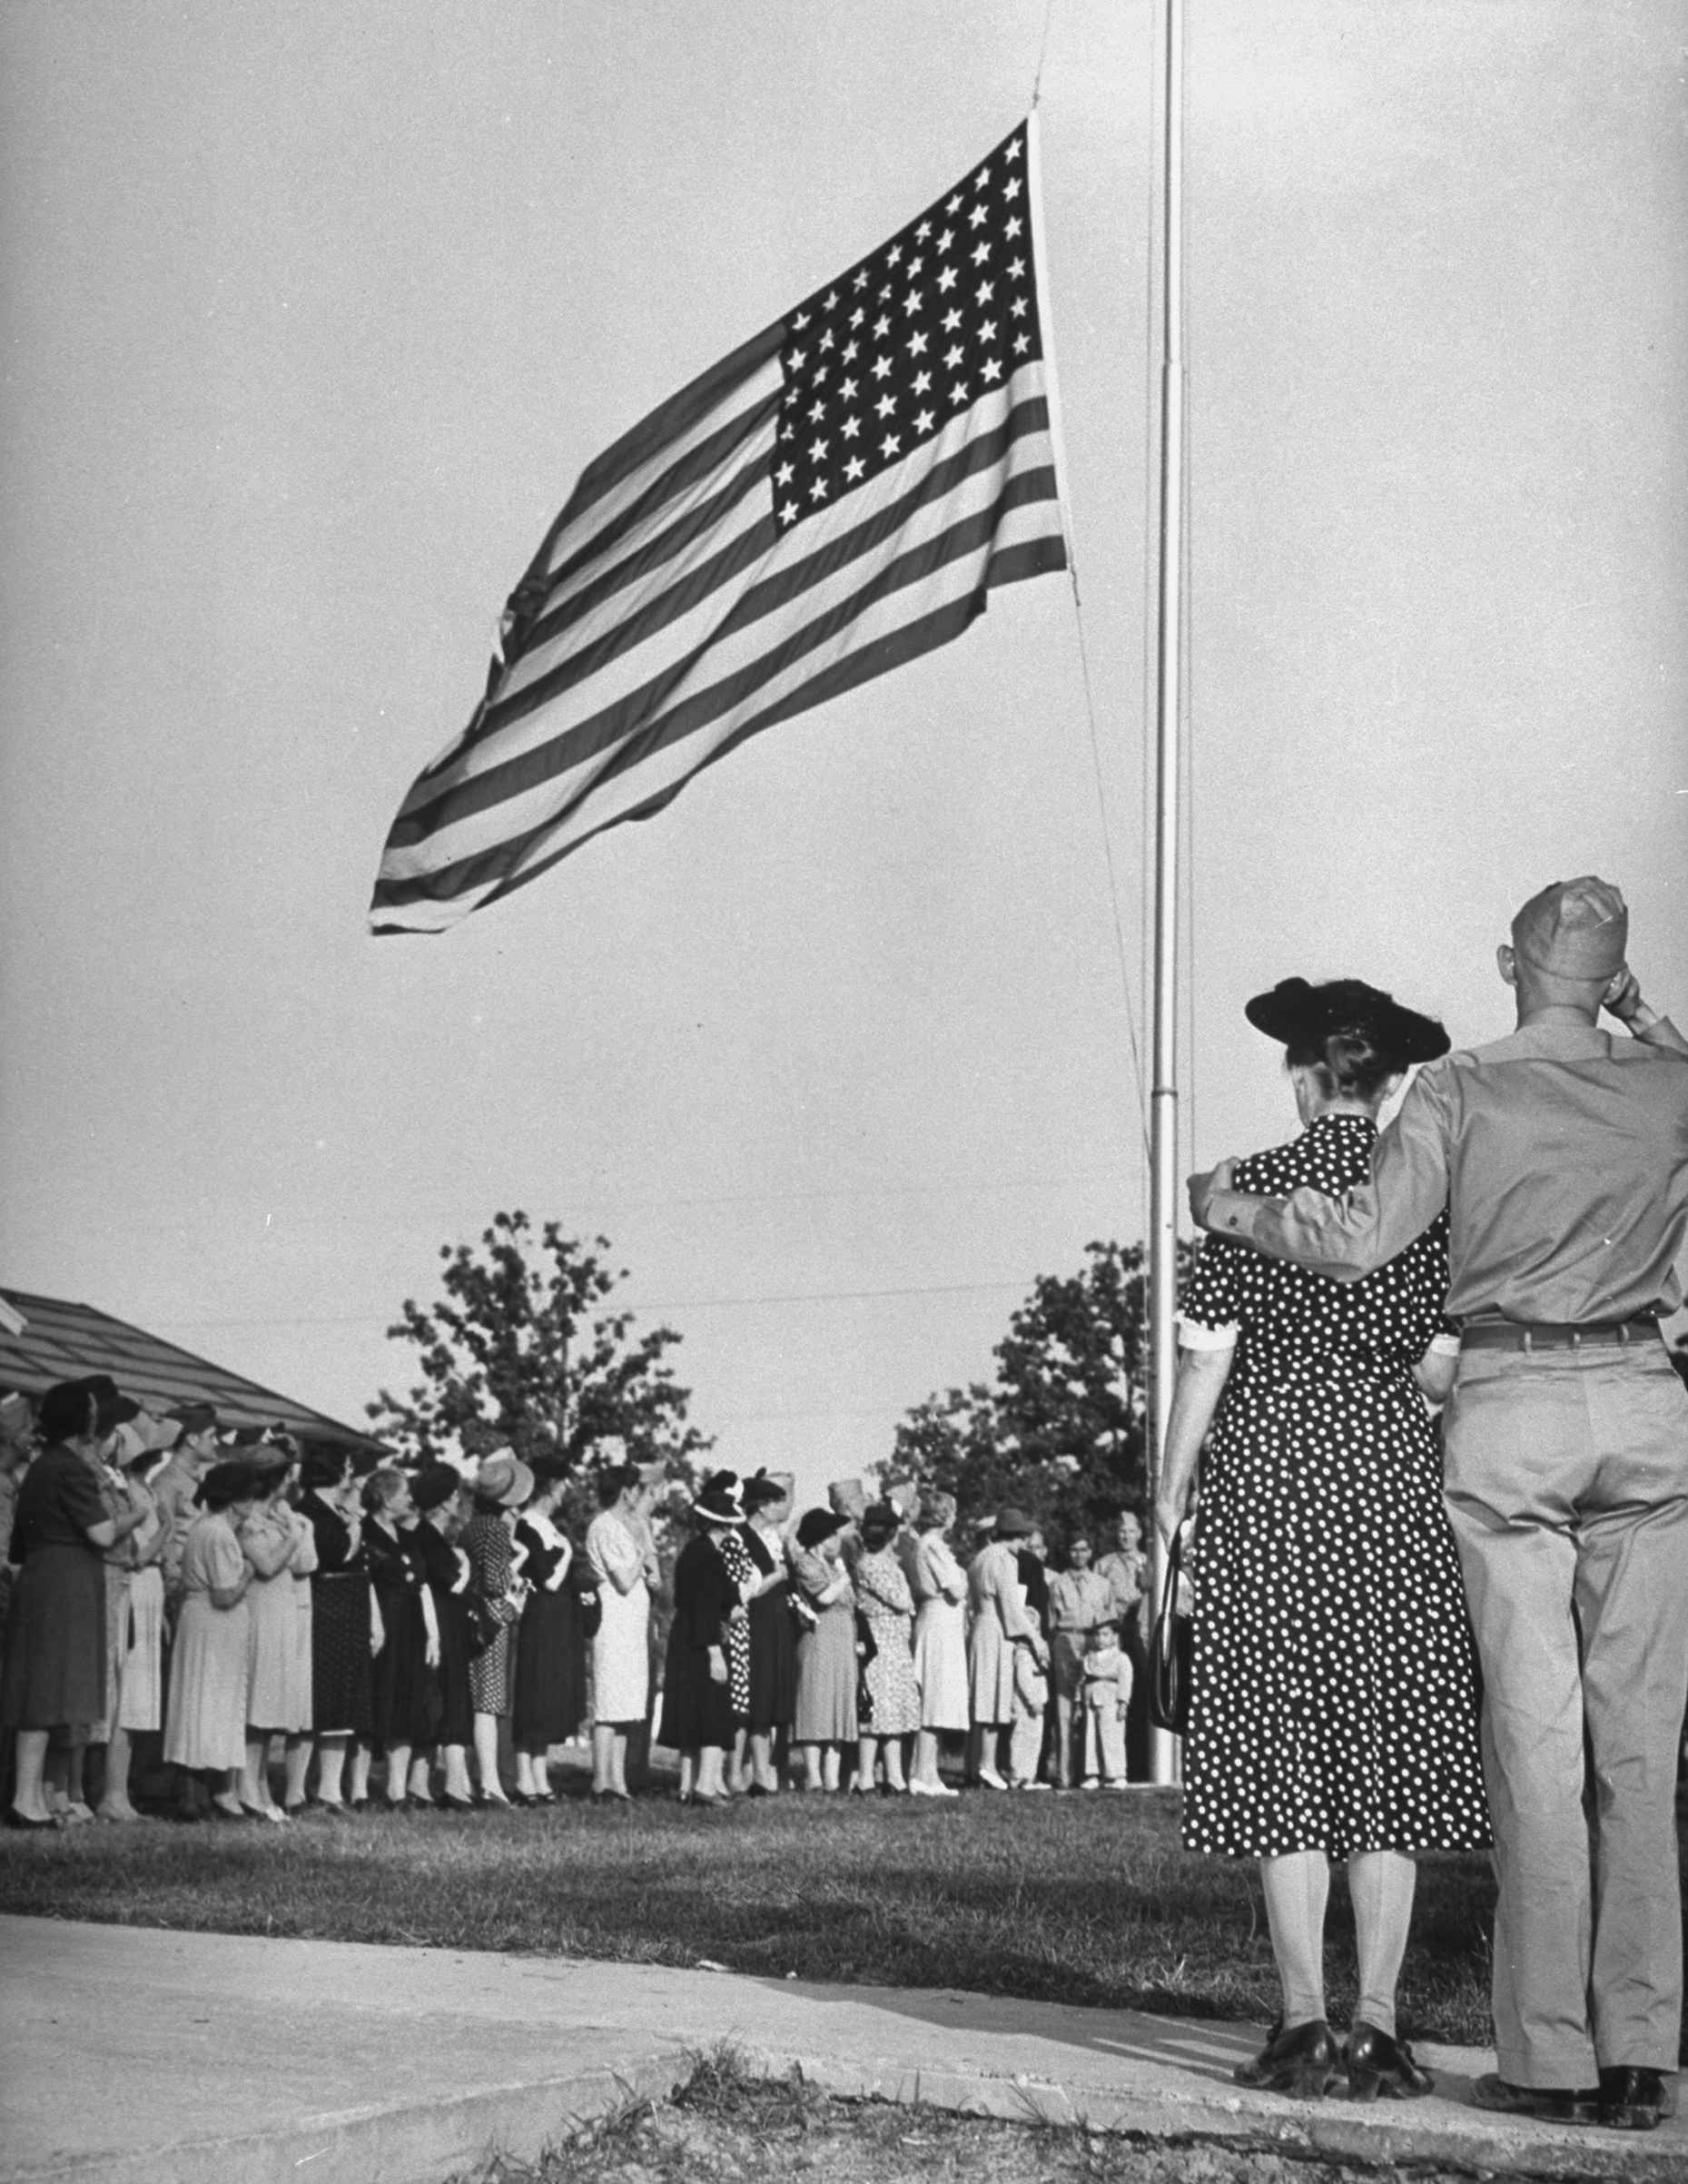 Mothers standing in line near the American flag during the crowing ceremonies of Mother's Day on a U.S. Army base. 1942.